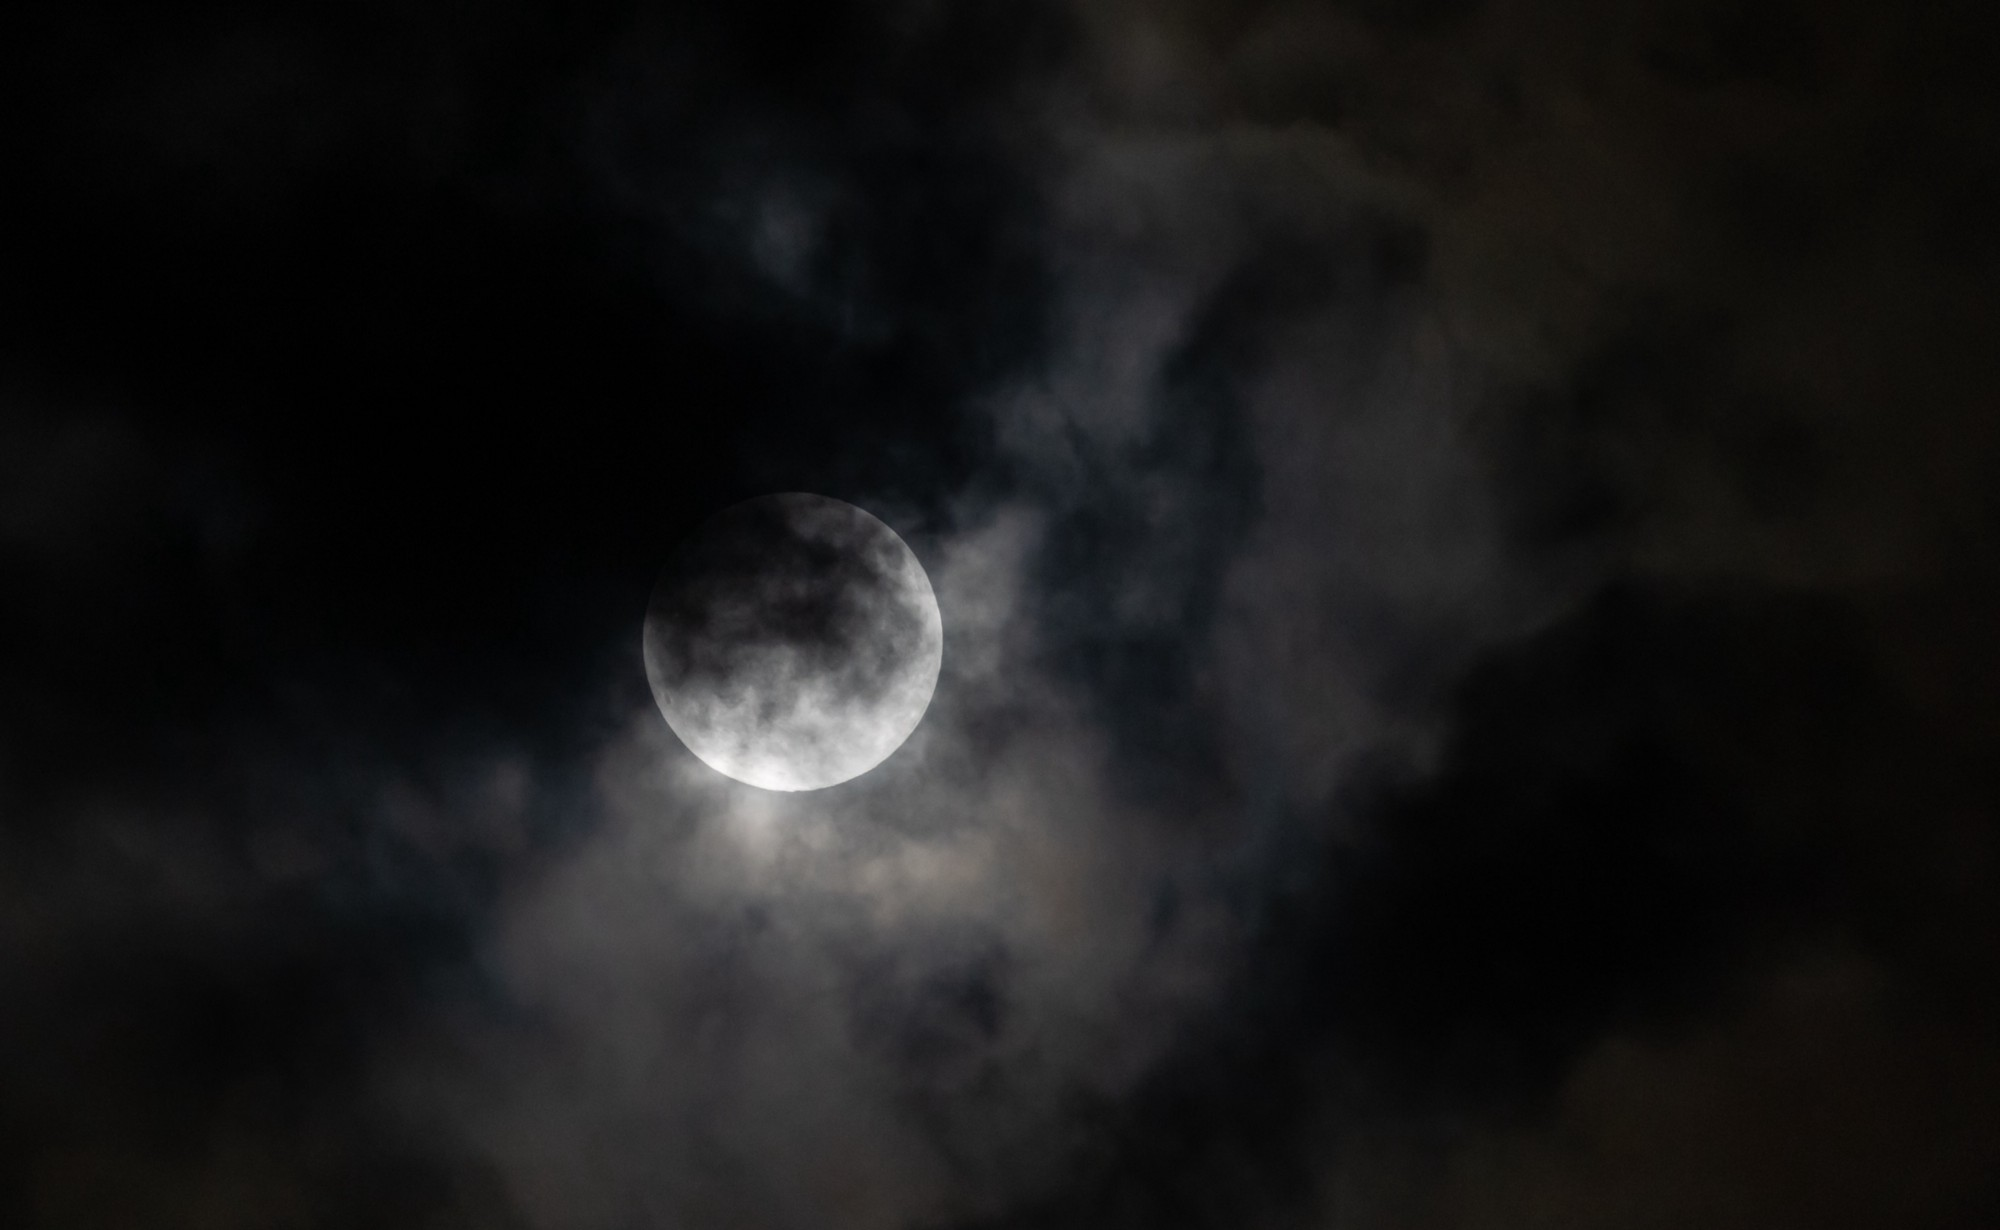 The moon on a cloudy night